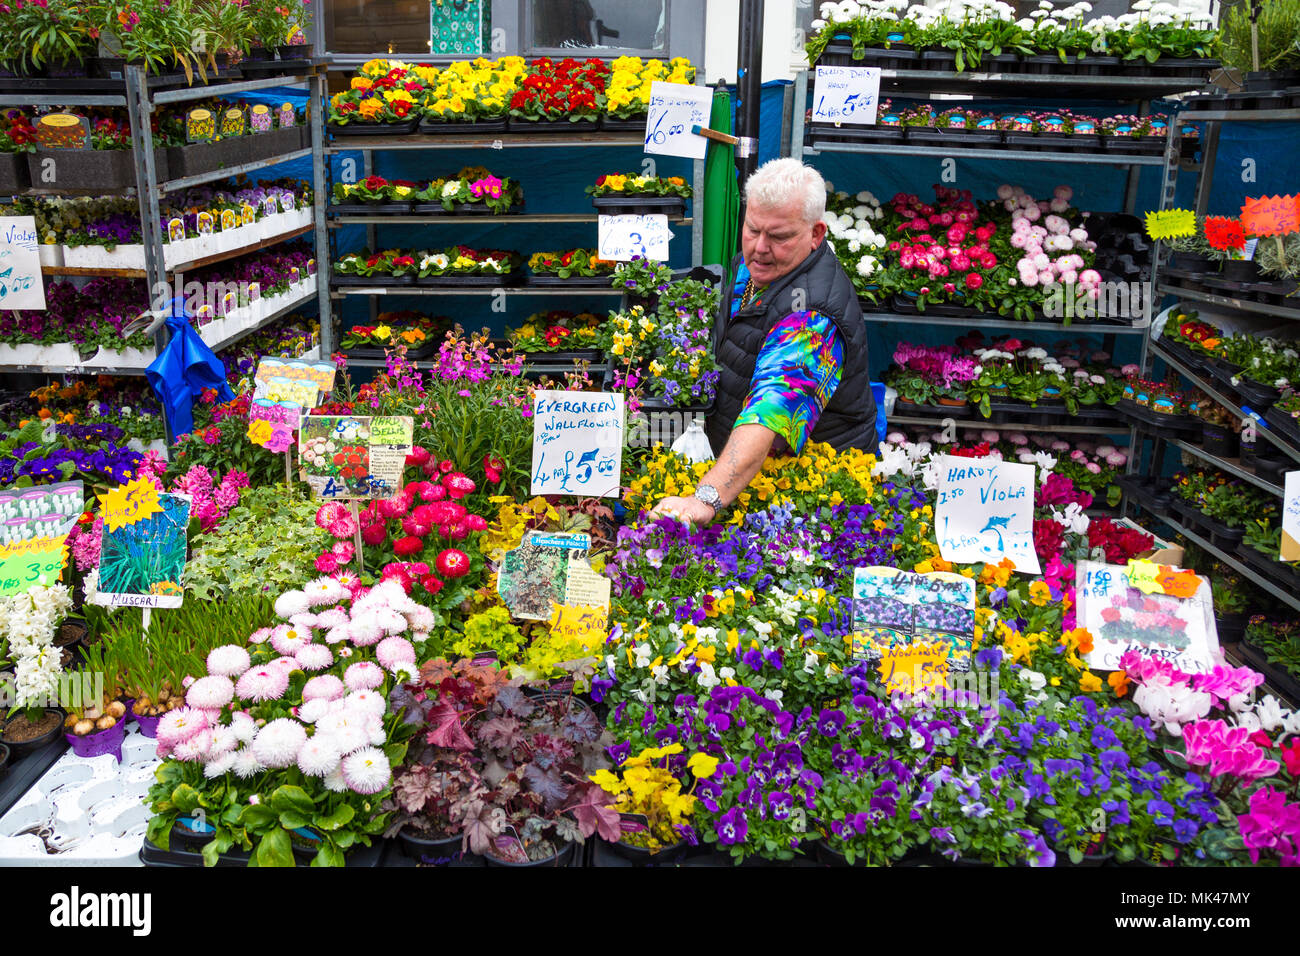 Flower seller at his stall in the Columbia Road Flower Market, London, UK - Stock Image